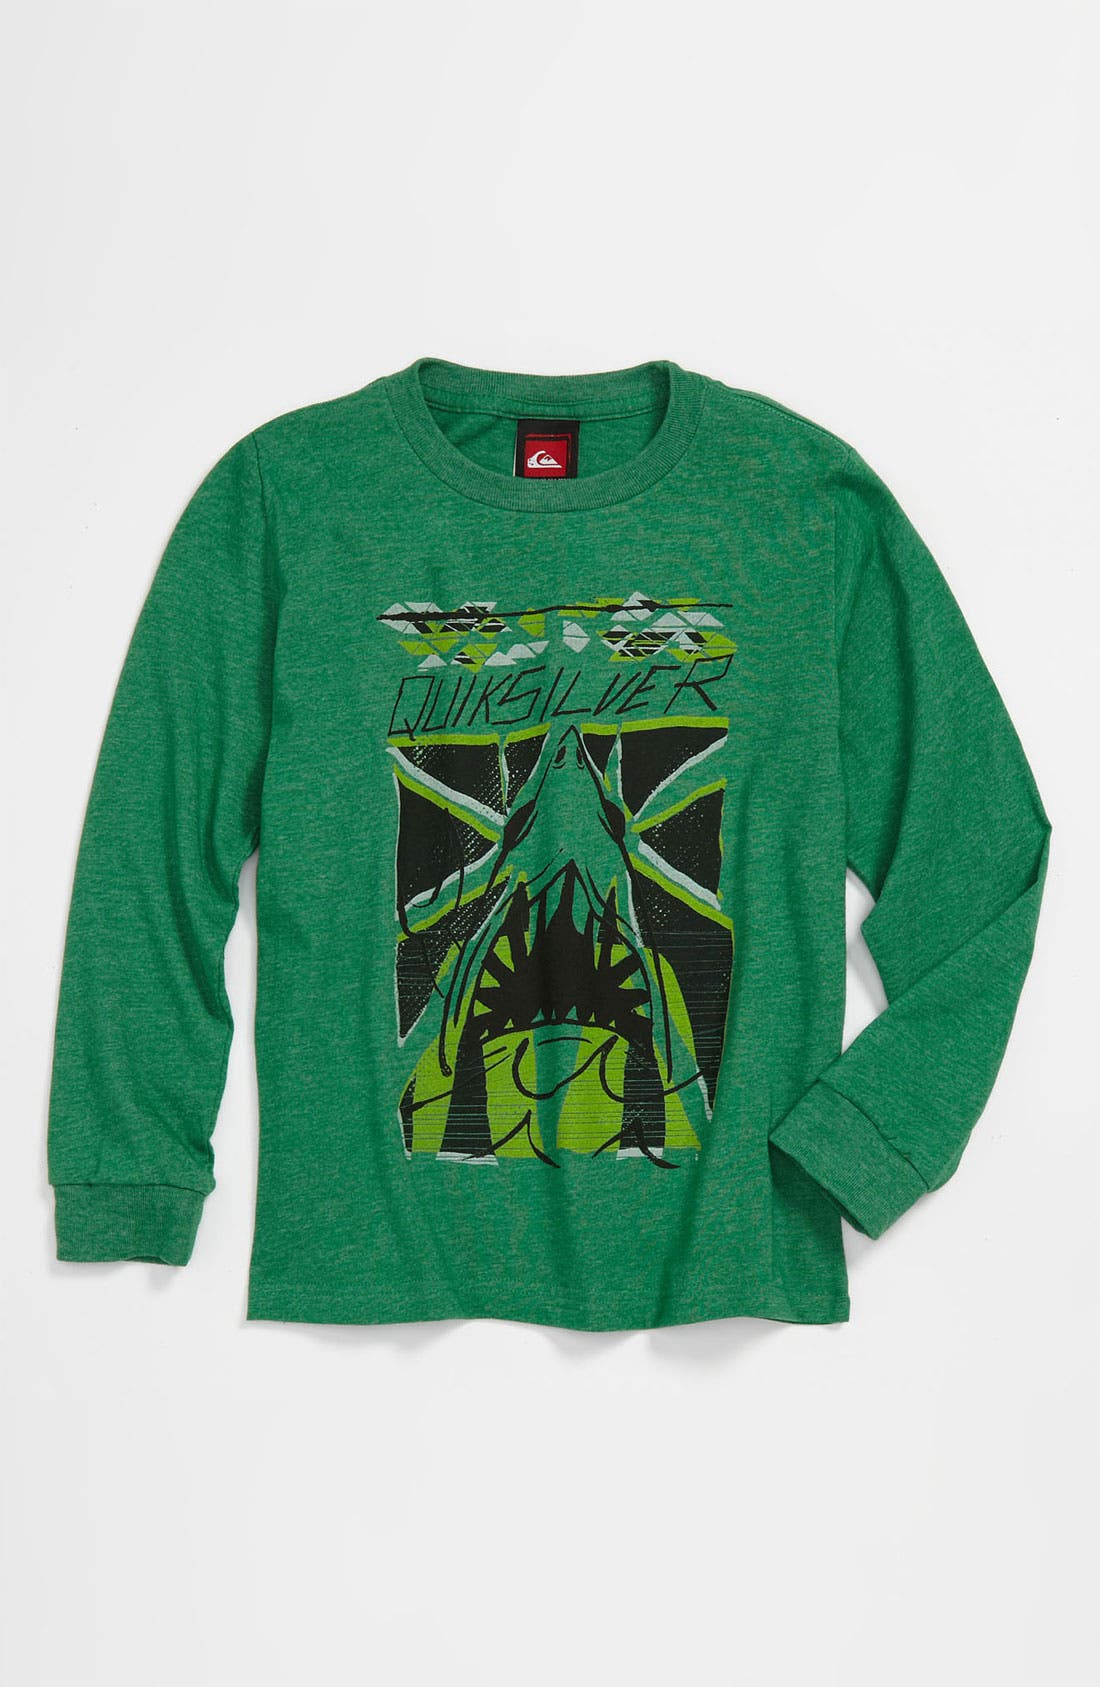 Alternate Image 1 Selected - Quiksilver 'Other World' T-Shirt (Little Boys)